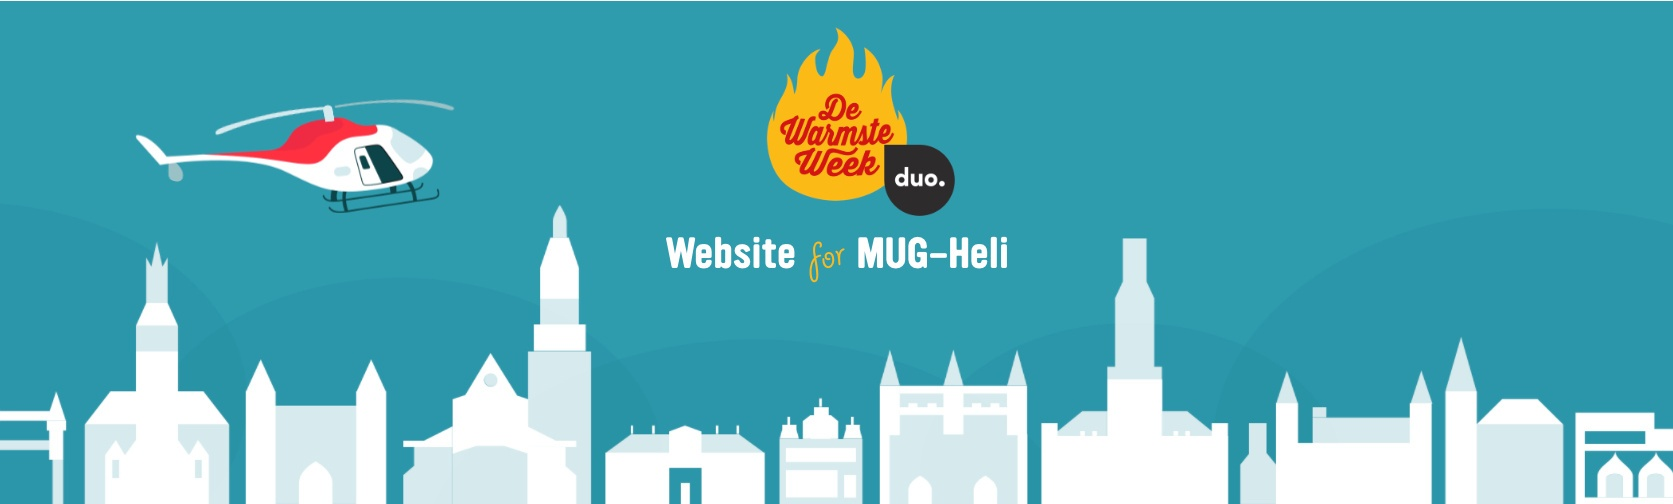 De Warmste Week - Studio Brussel - Website for Life - Duo